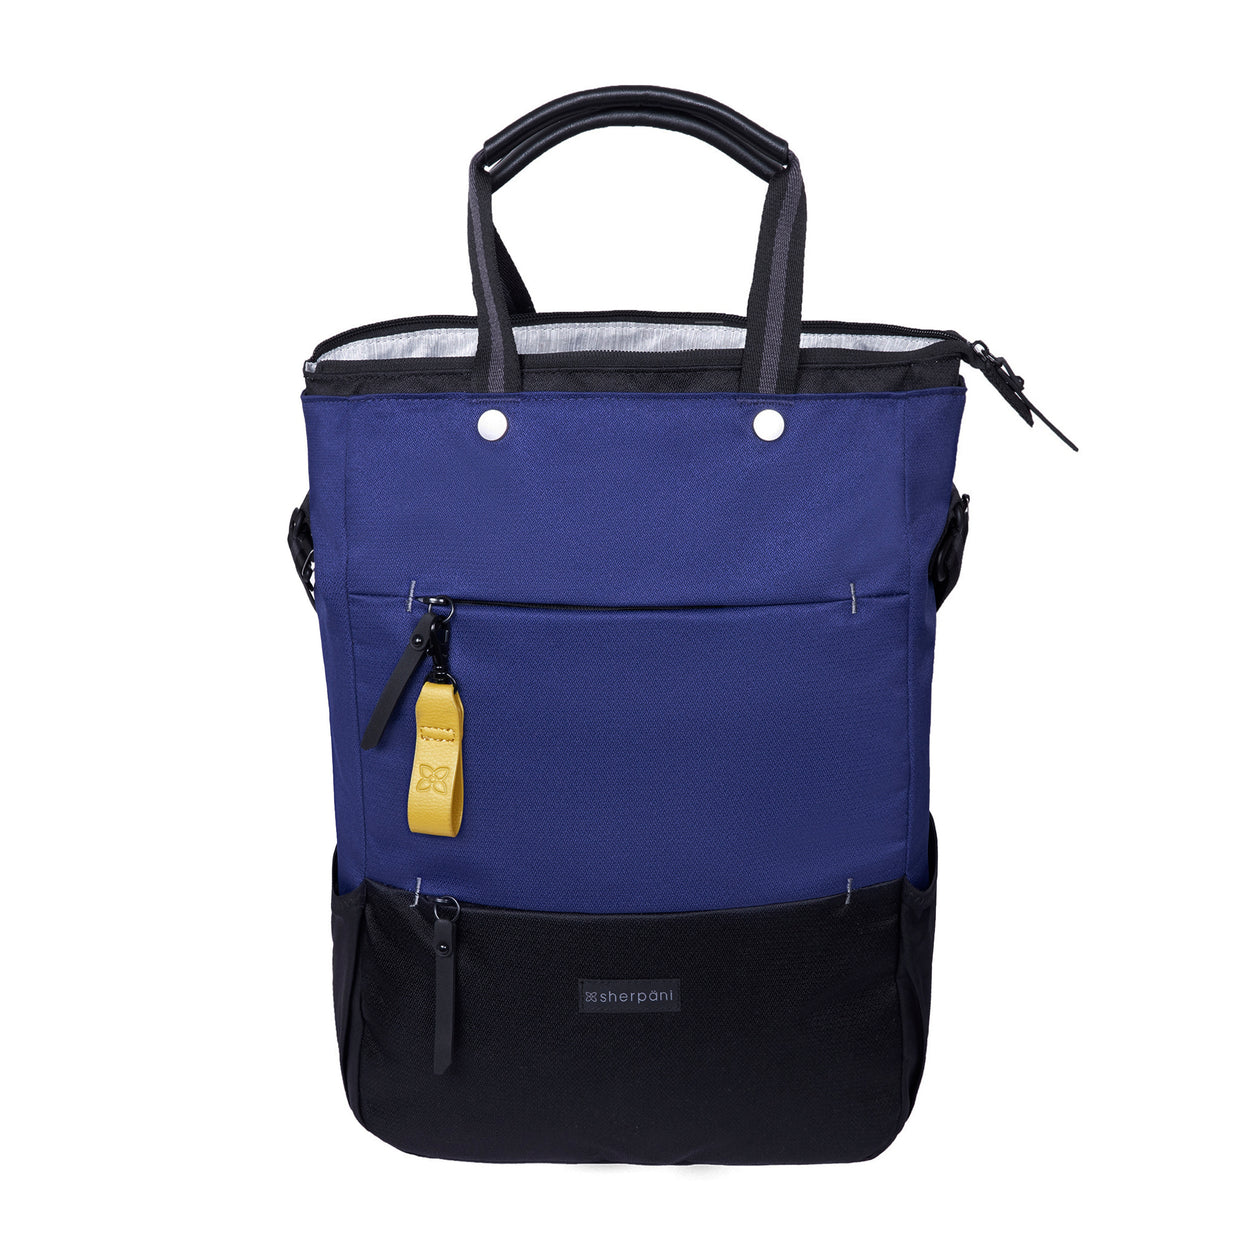 619ee6b1fe0 Sherpani- Lifestyle and Travel Bags Designed for Women